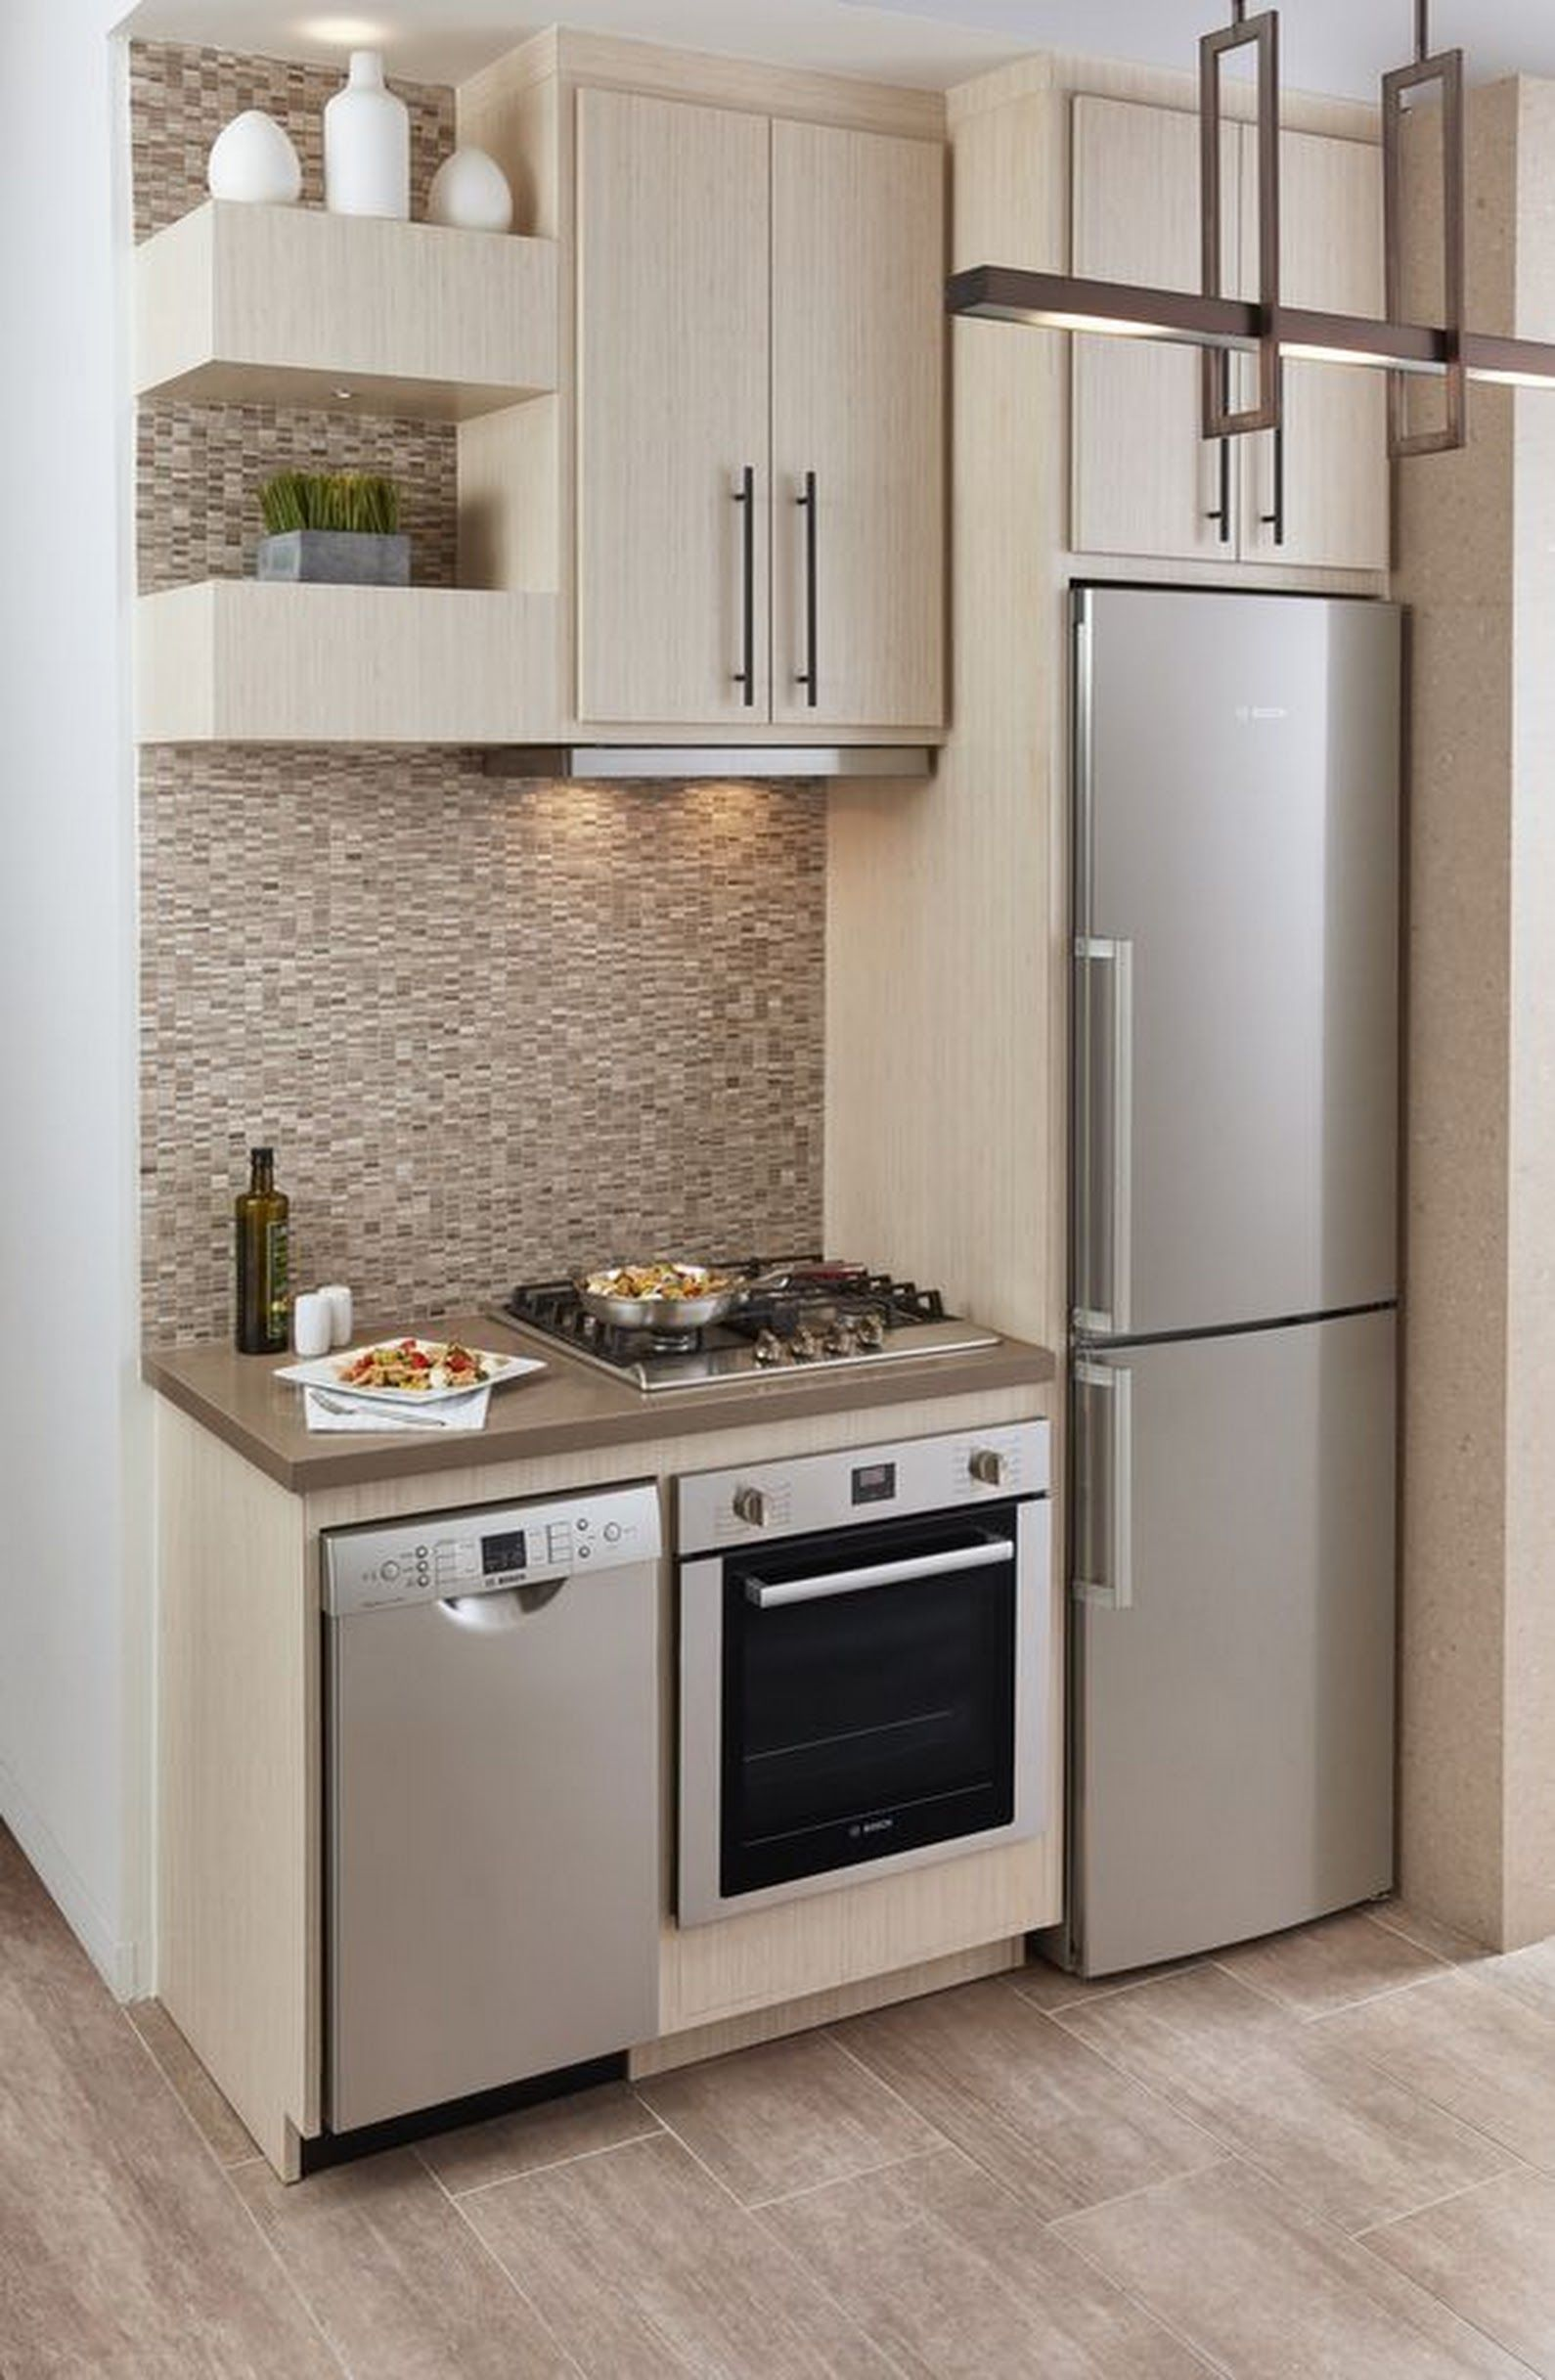 Kitchen Design For Small Space Minimalist And Country Kitchen Design Tiny House Kitchen Kitchen Design Small Kitchen Layout